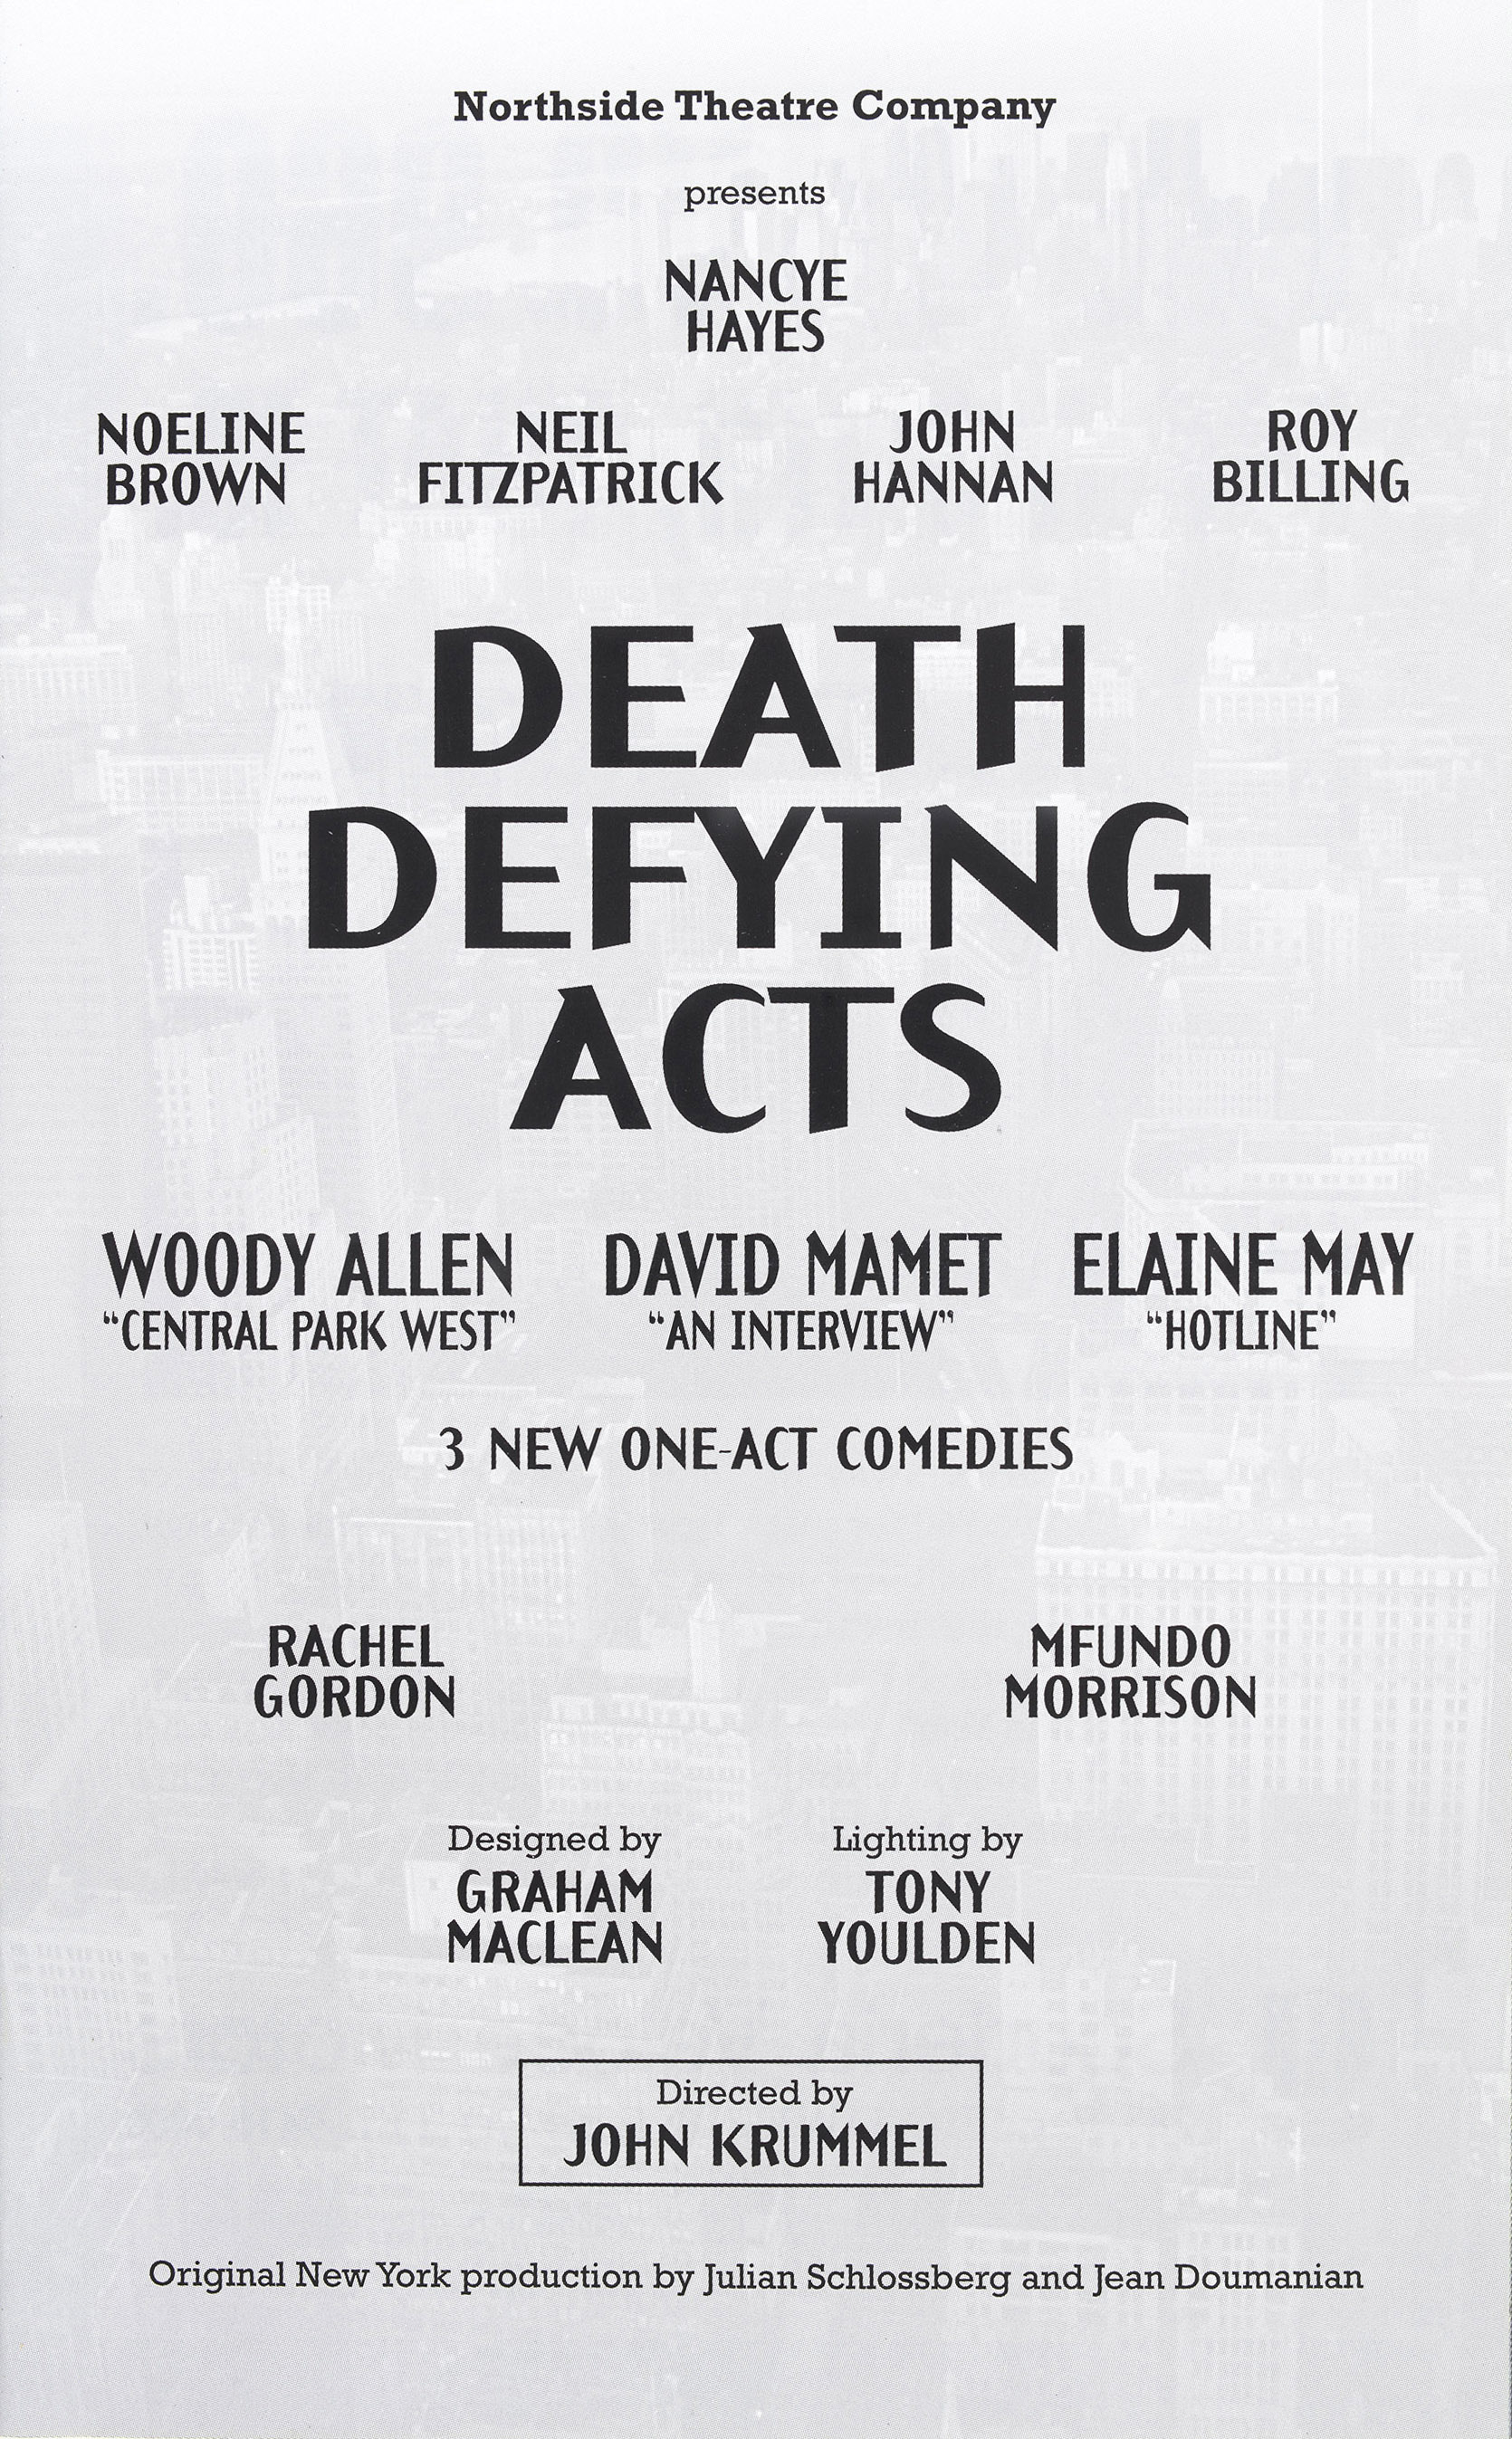 Program for Death Defying Acts, 1995 production, Marian Street Theatre records 1965–2002, box 8